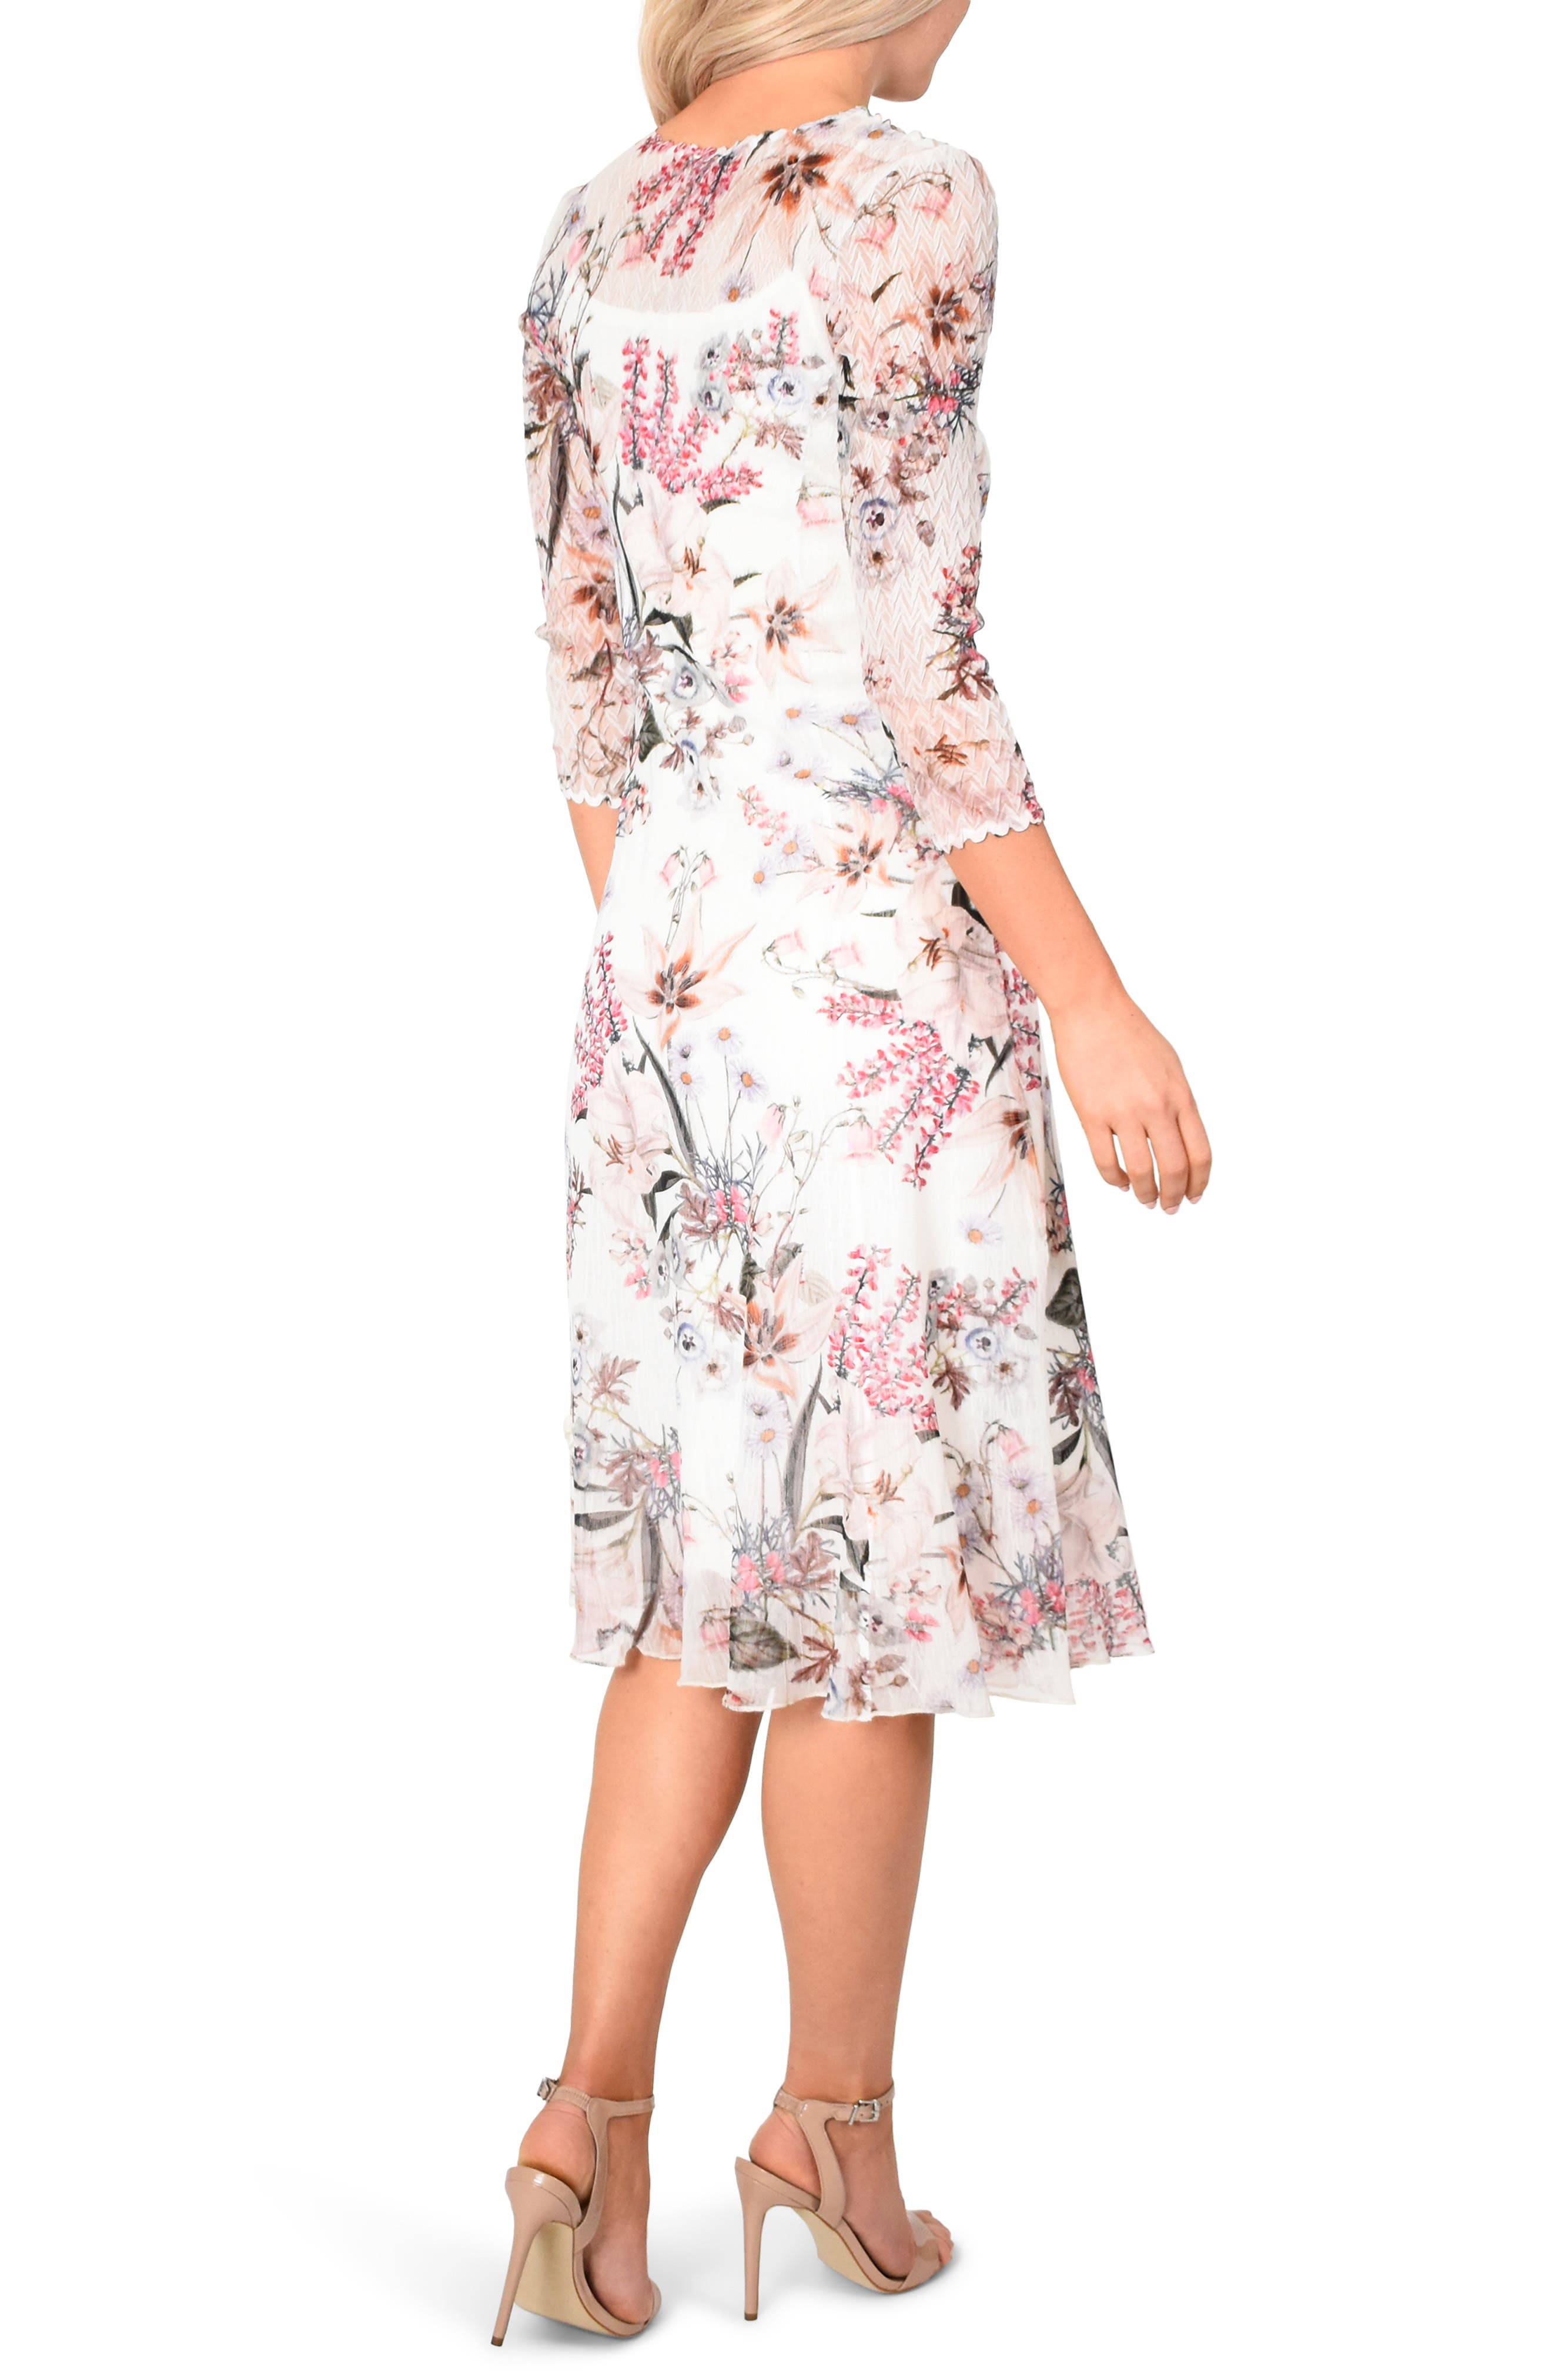 KOMAROV, Floral Chiffon MIdi Dress, Alternate thumbnail 2, color, SPRING ORCHARD